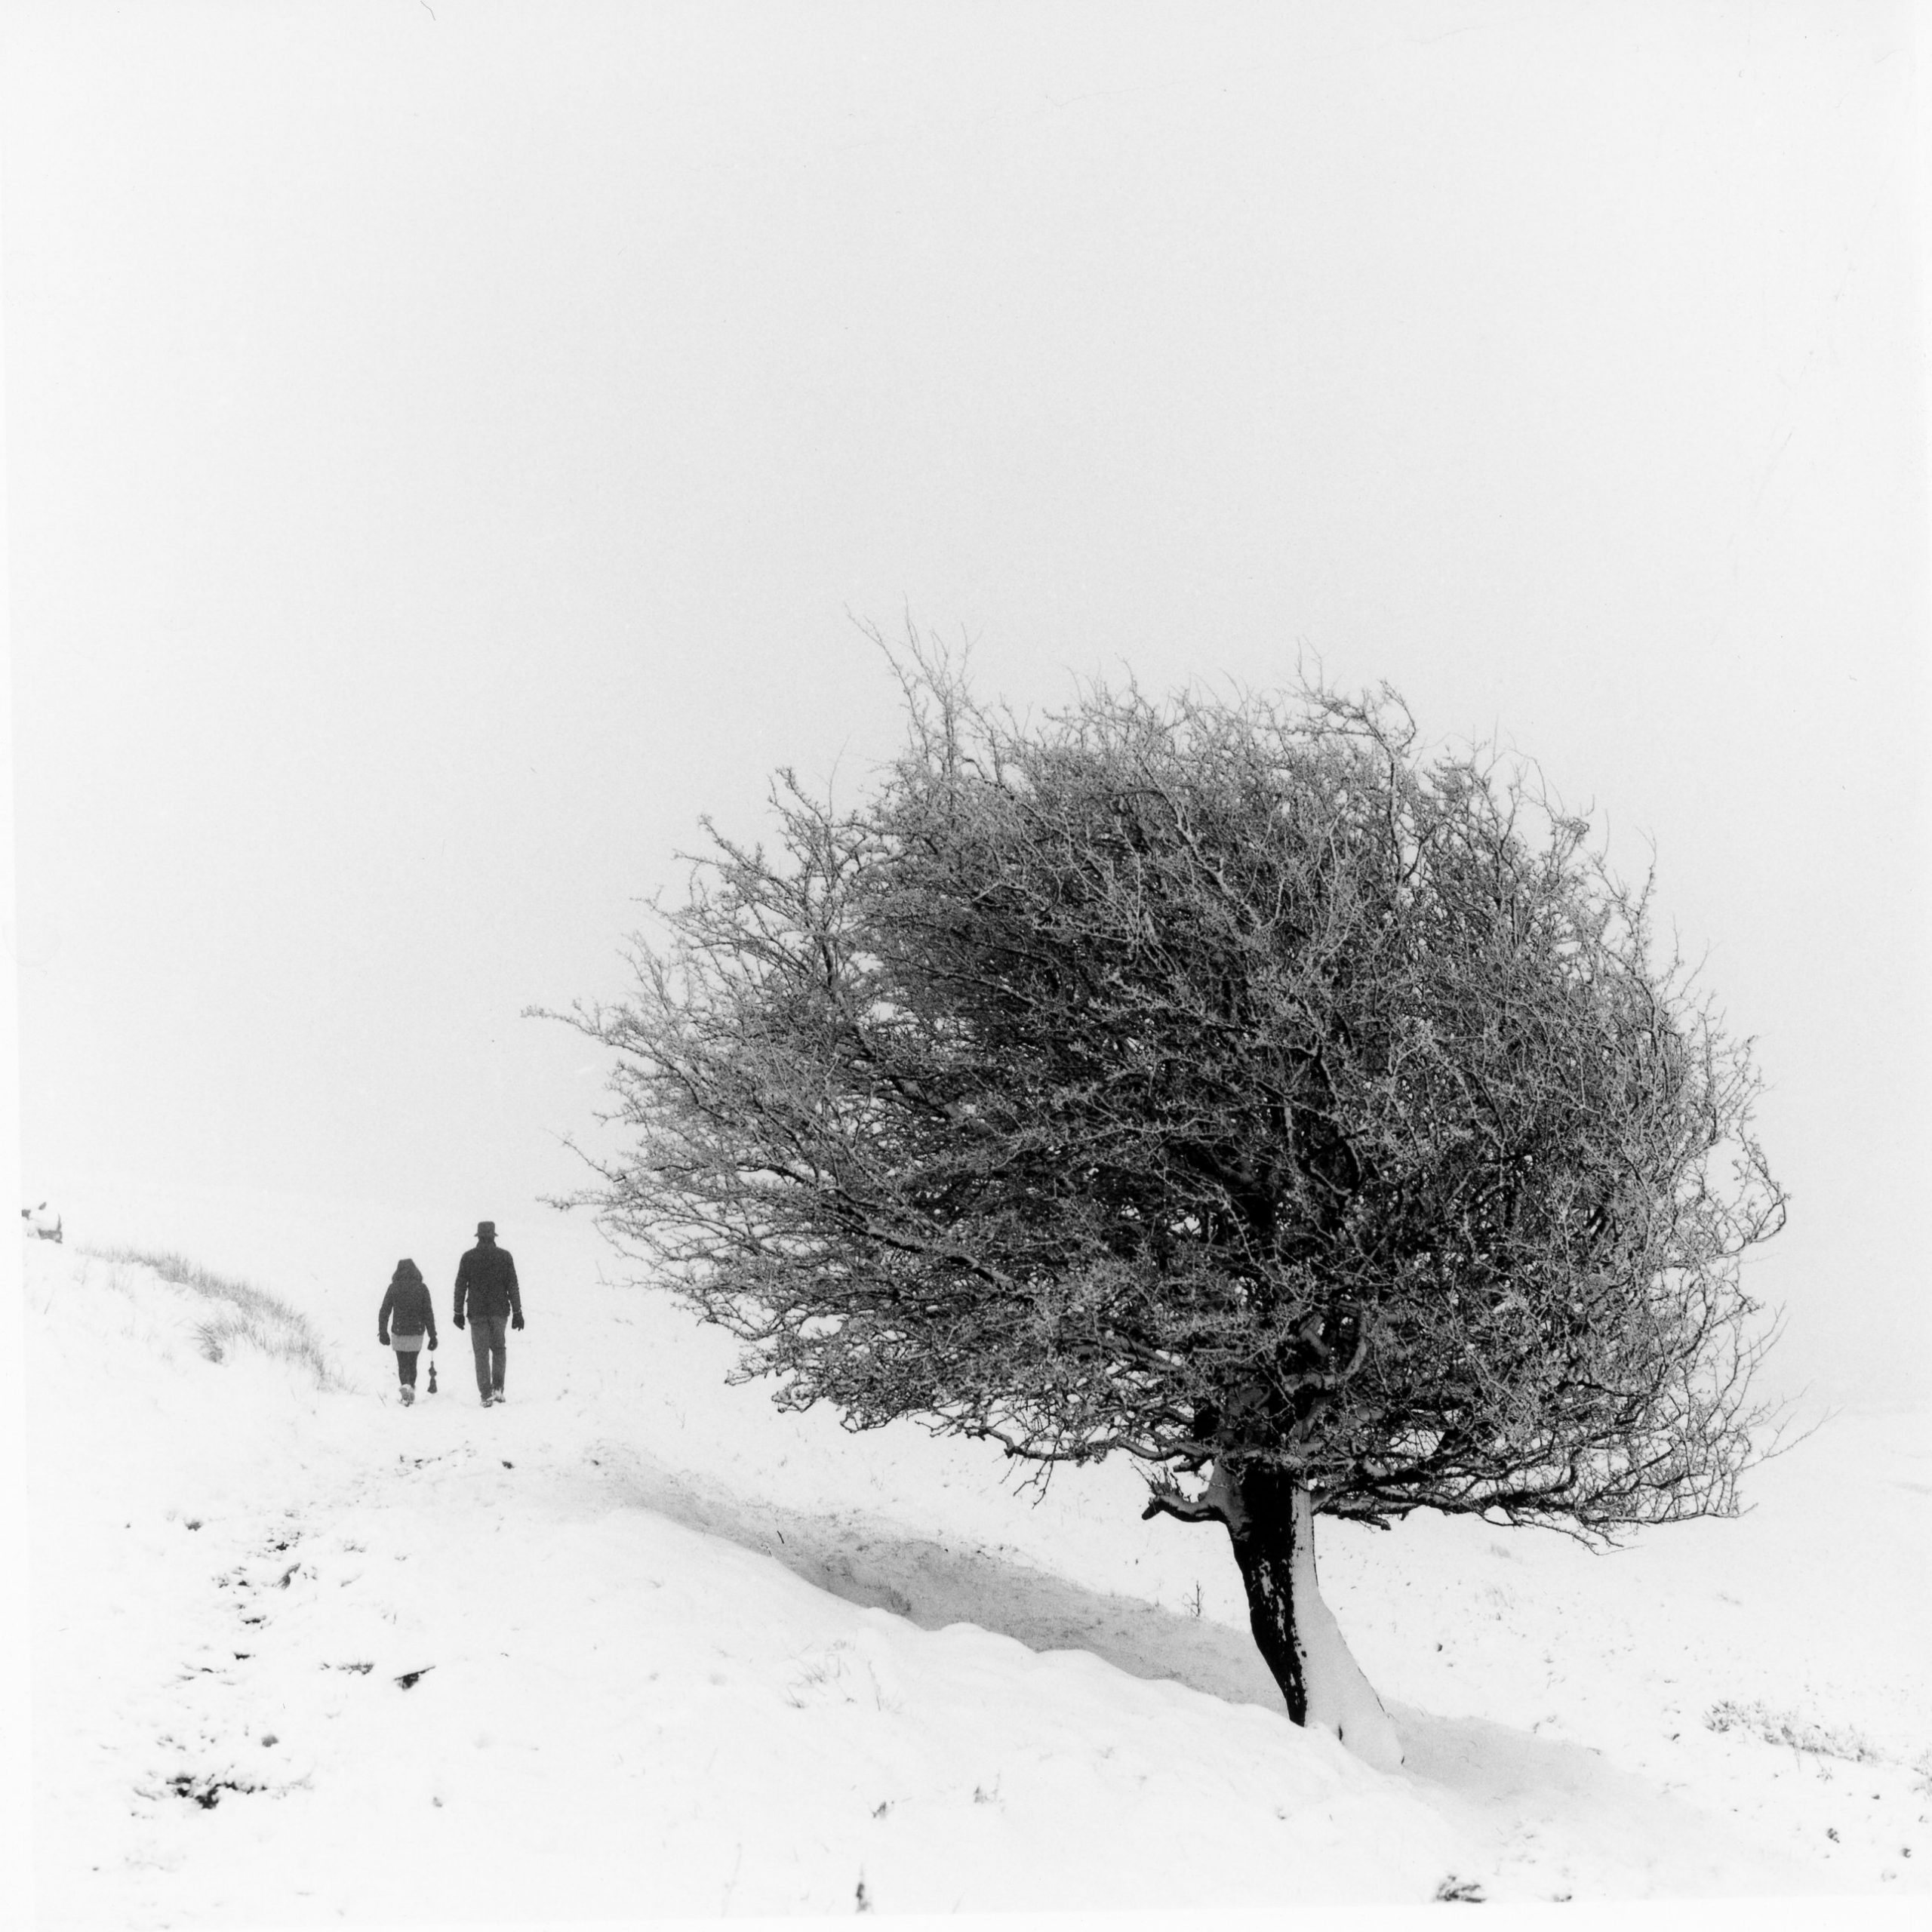 @debrawilsonsays · 2h Things that make me smile- snow on hawthorn trees. First darkroom print. Shot for @ILFORDPhoto #ilfordphoto #fridayfavourites #positivenegative Now it's back into the darkroom for another go!